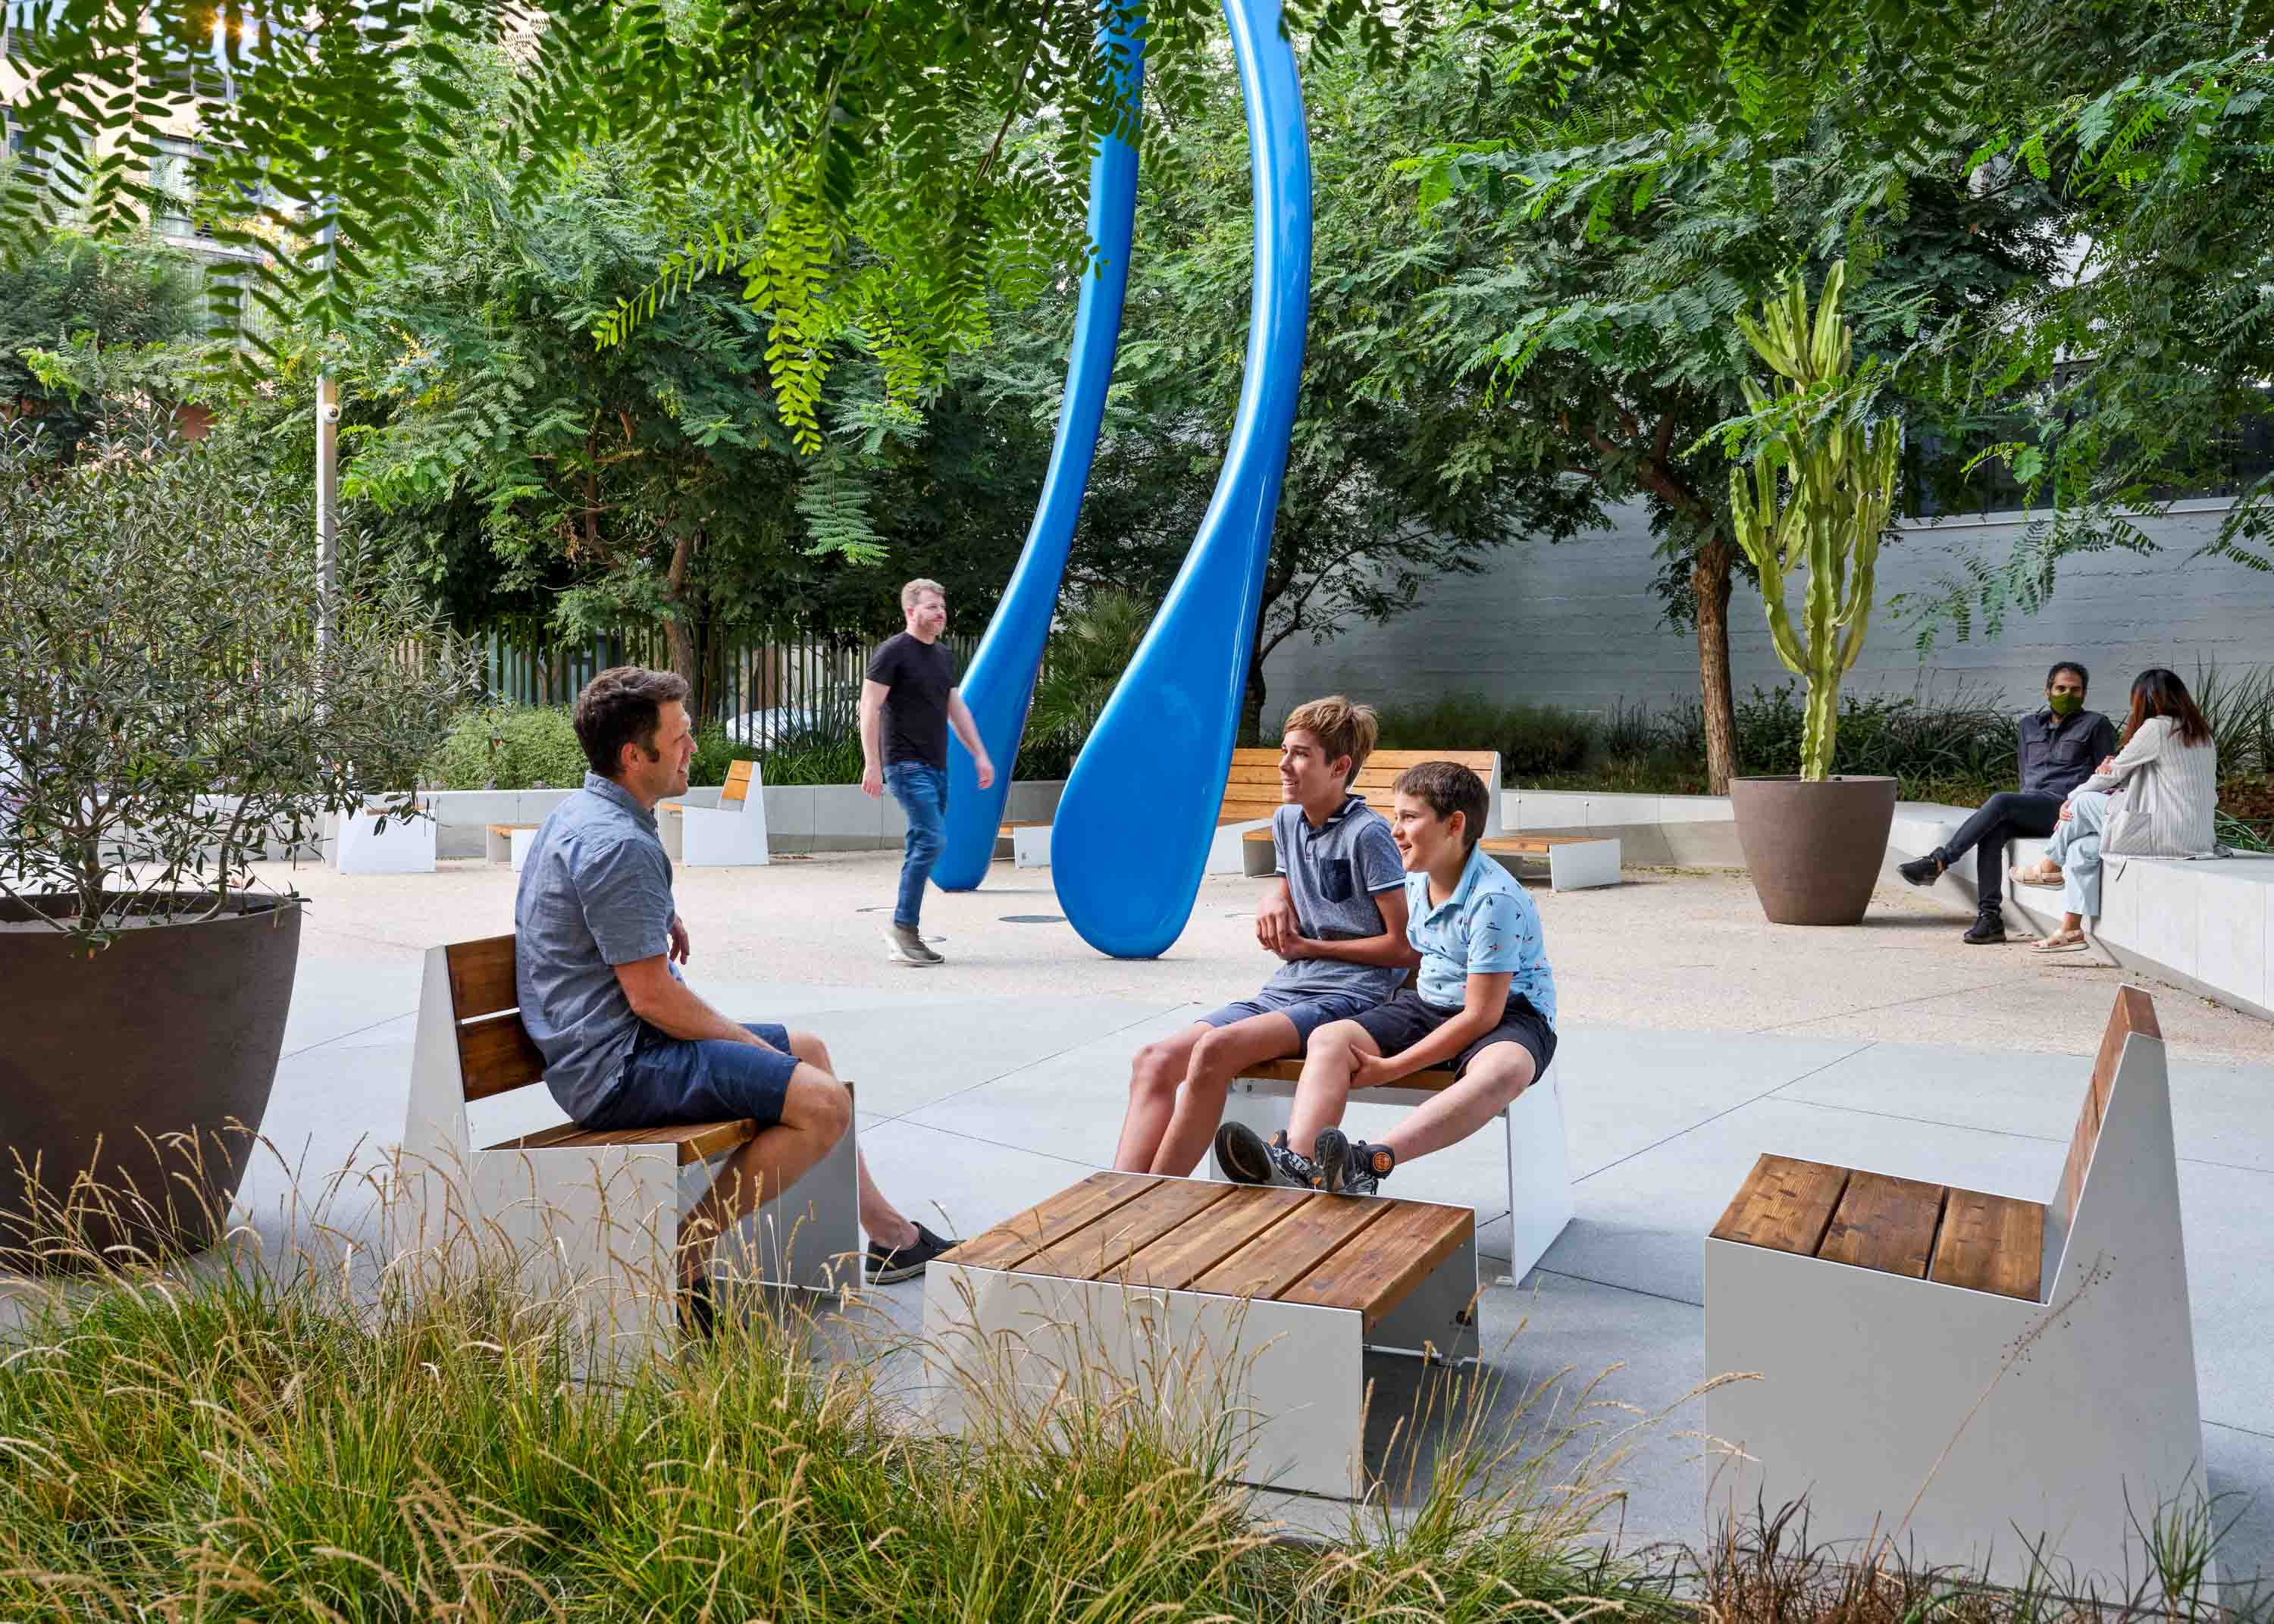 man seated with two kids on wooden furniture with a large blue sculpture in the background